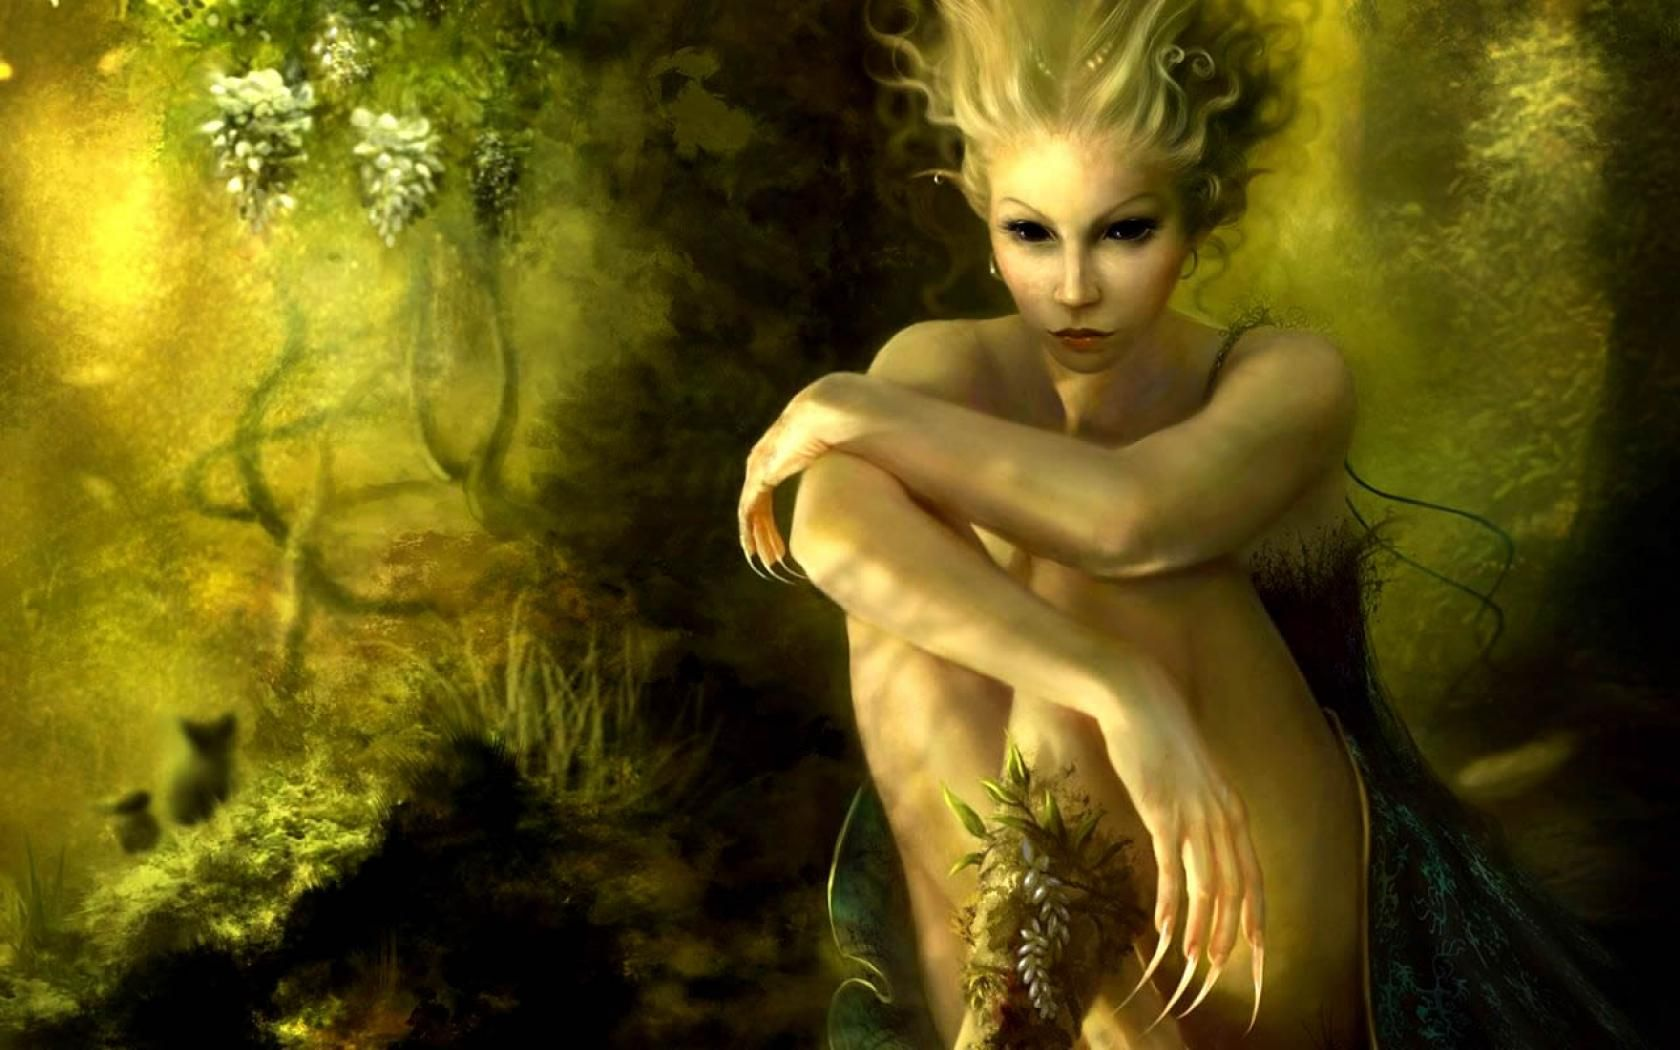 Wallpapers nightelf free hd sexy elf girl with long nails x fairy in woods green fairy elf forest x 768 px cartoonsdark arts pictures and wallpapers voltagebd Gallery